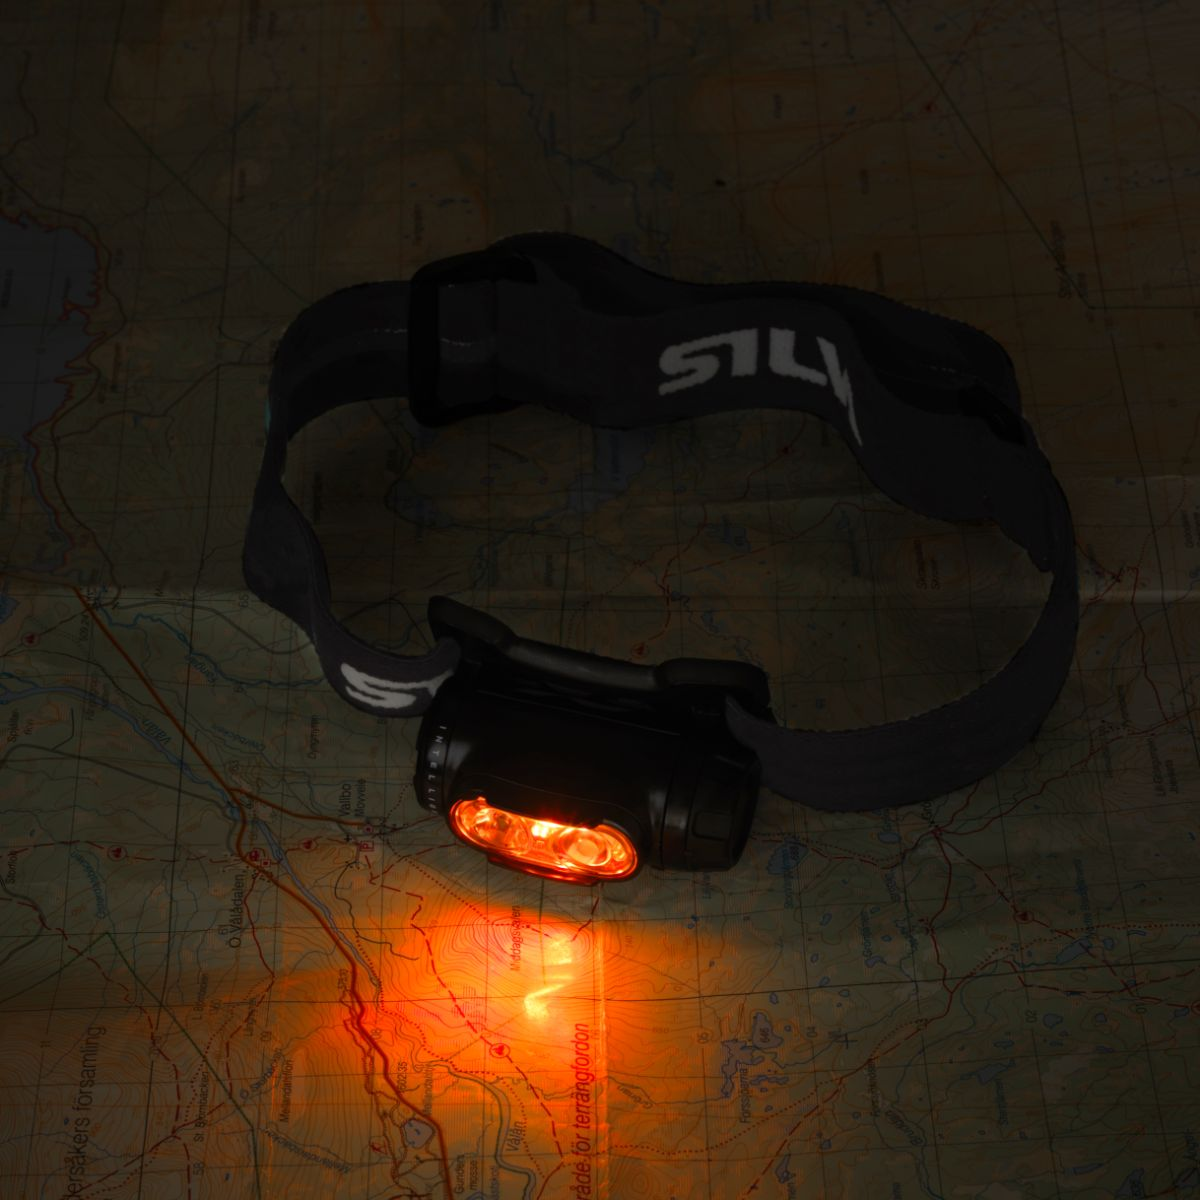 Silva Explore 4RC headtorch chart